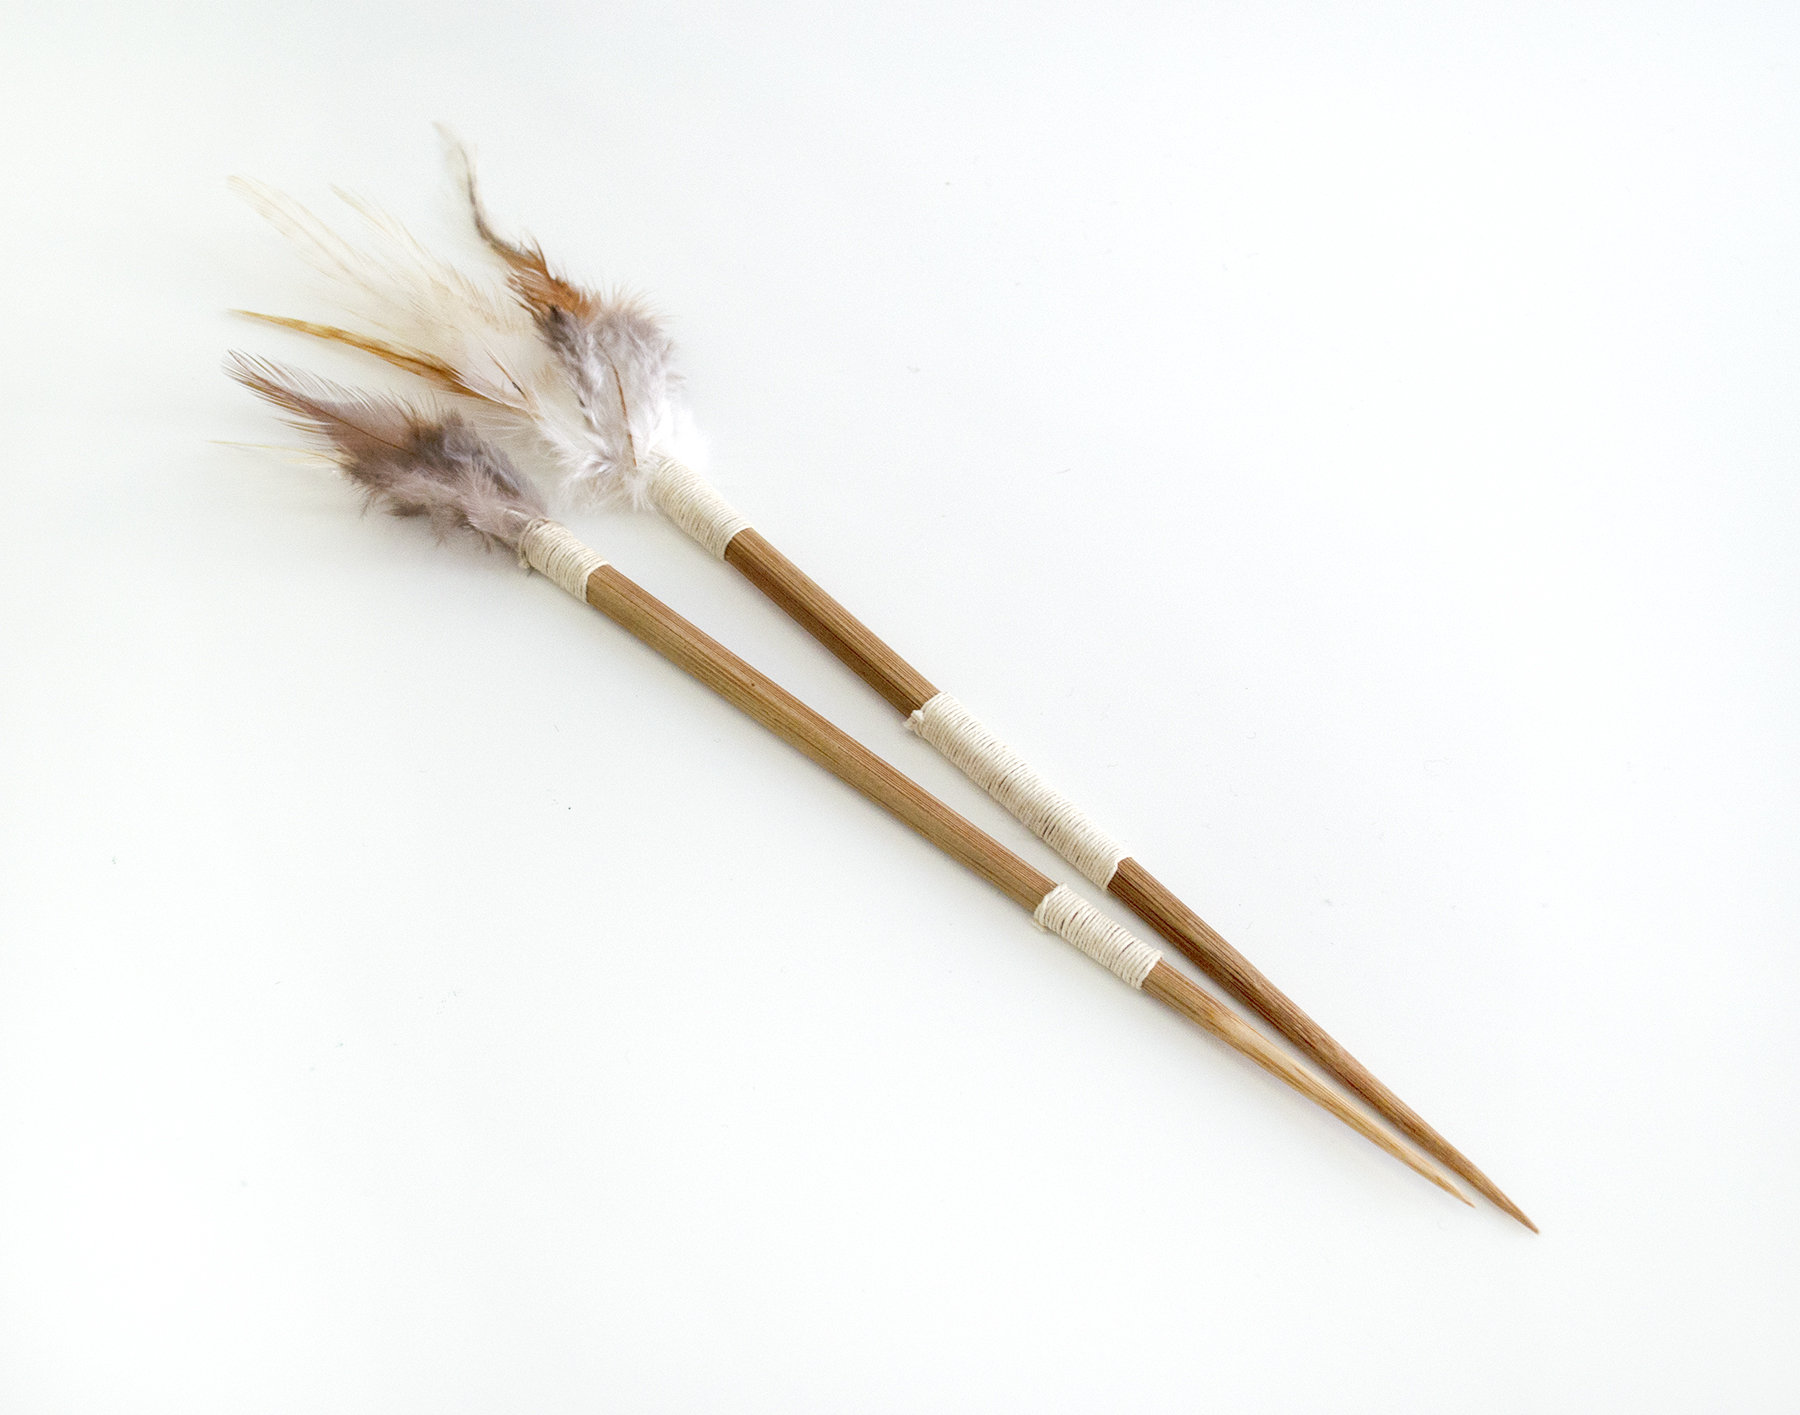 "Darts (2), 2018, Carlos Colín, Chopsticks, thread, feathers, 13"" (L), SOLD"